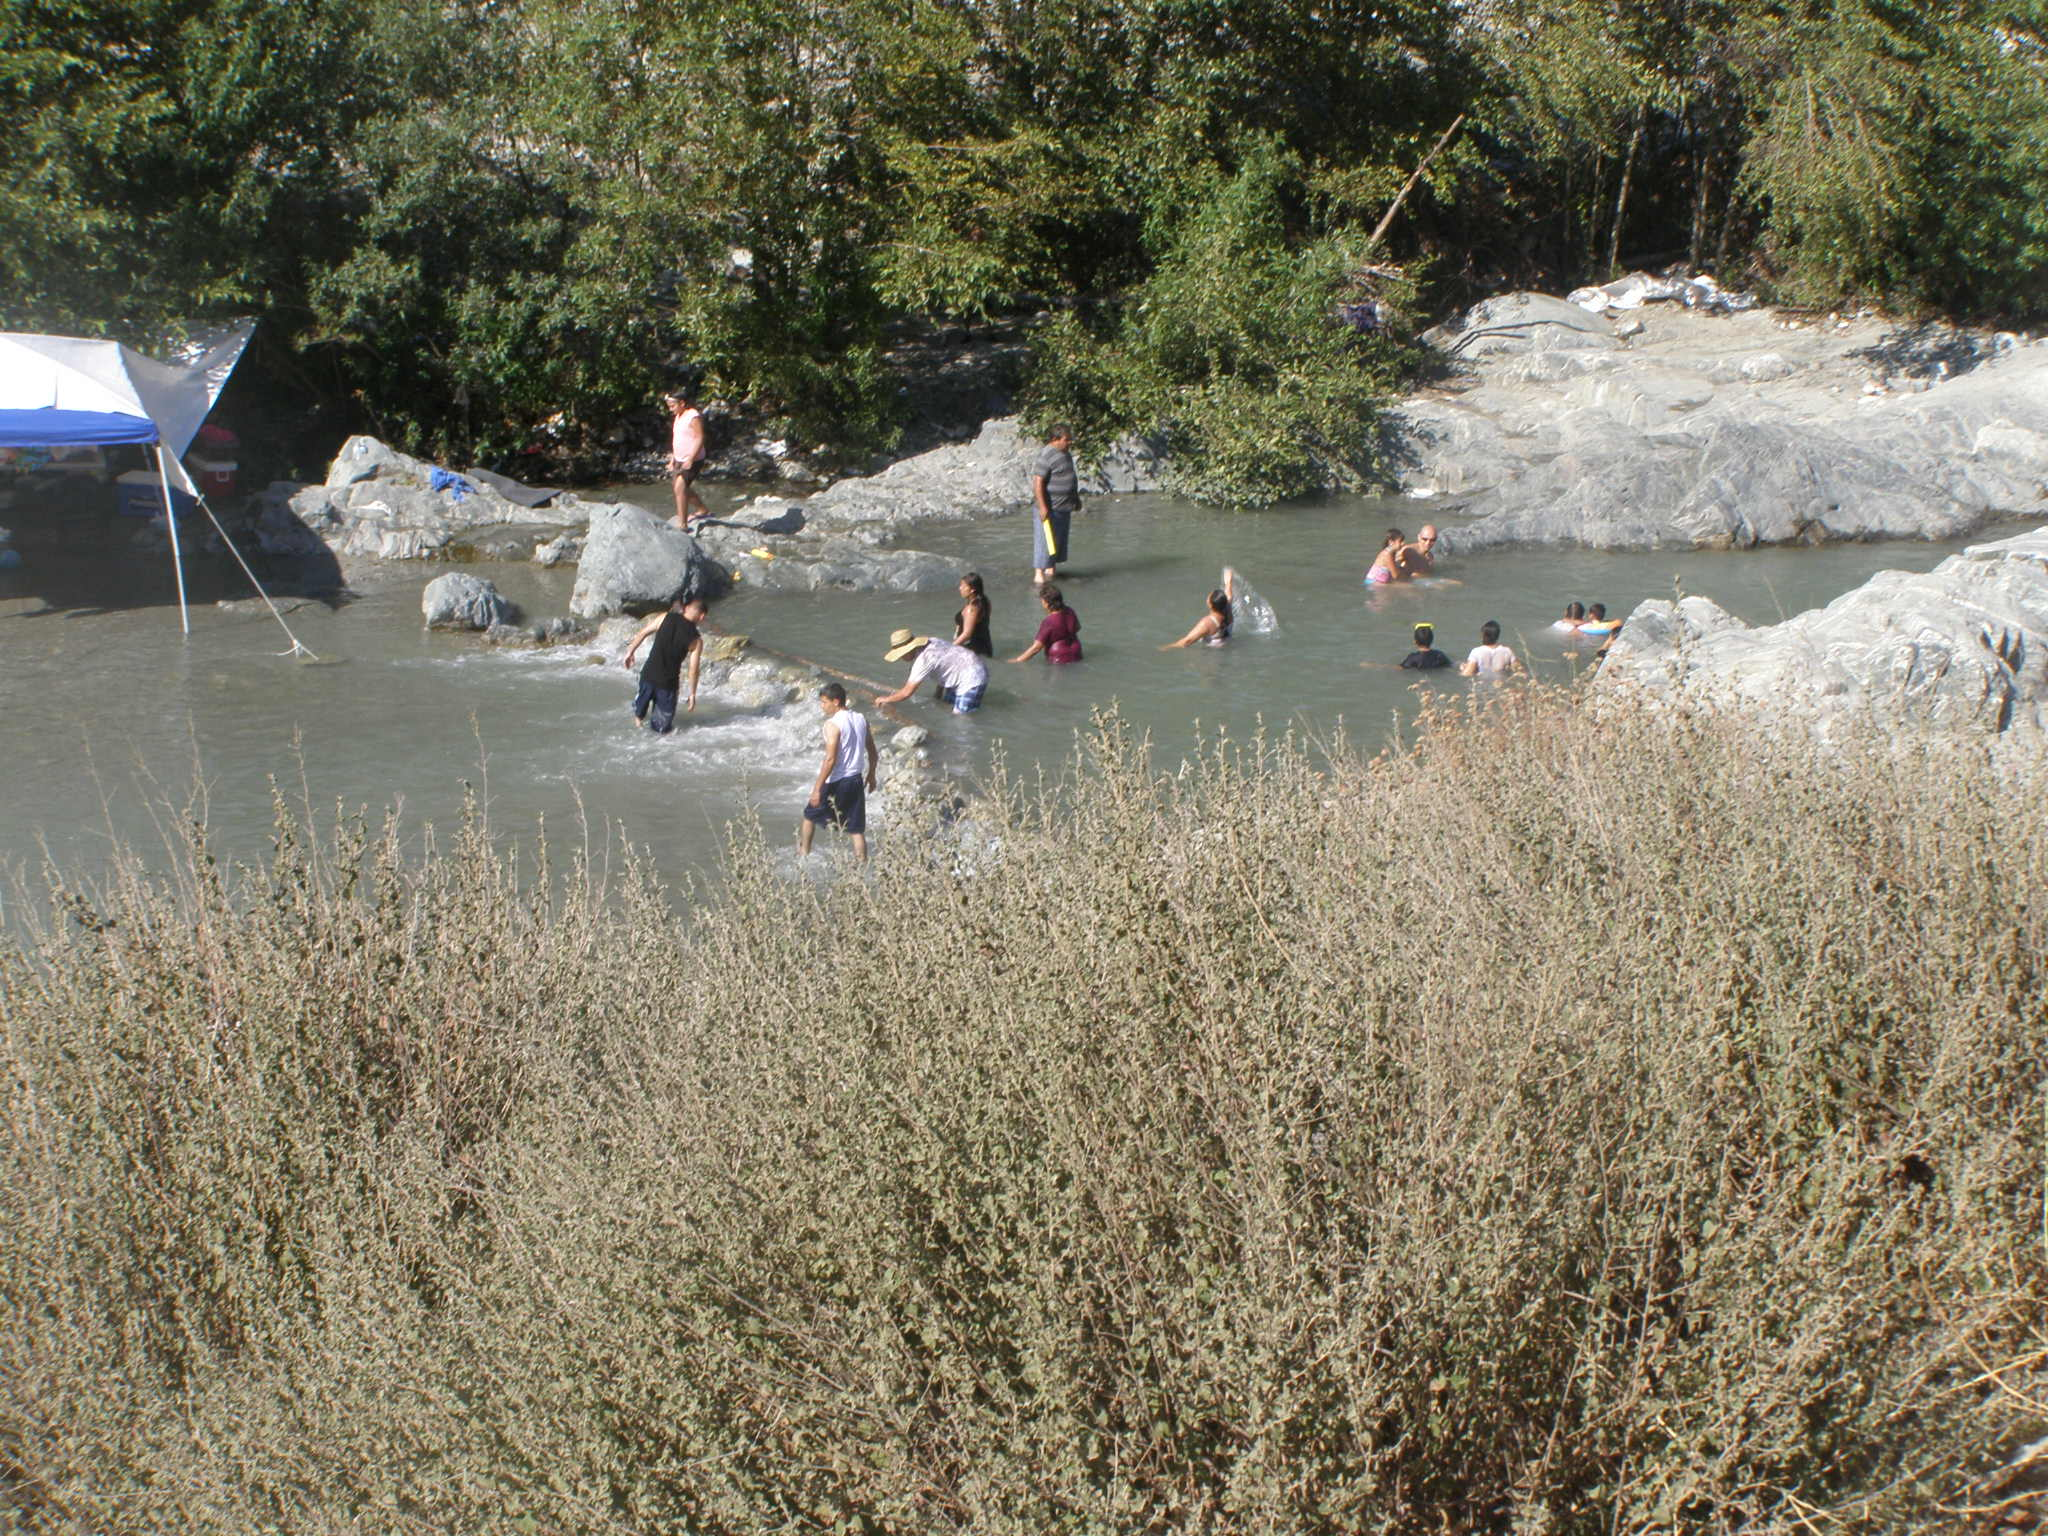 About a dozen family members wade and frolic in the San Gabriel River East Fork.